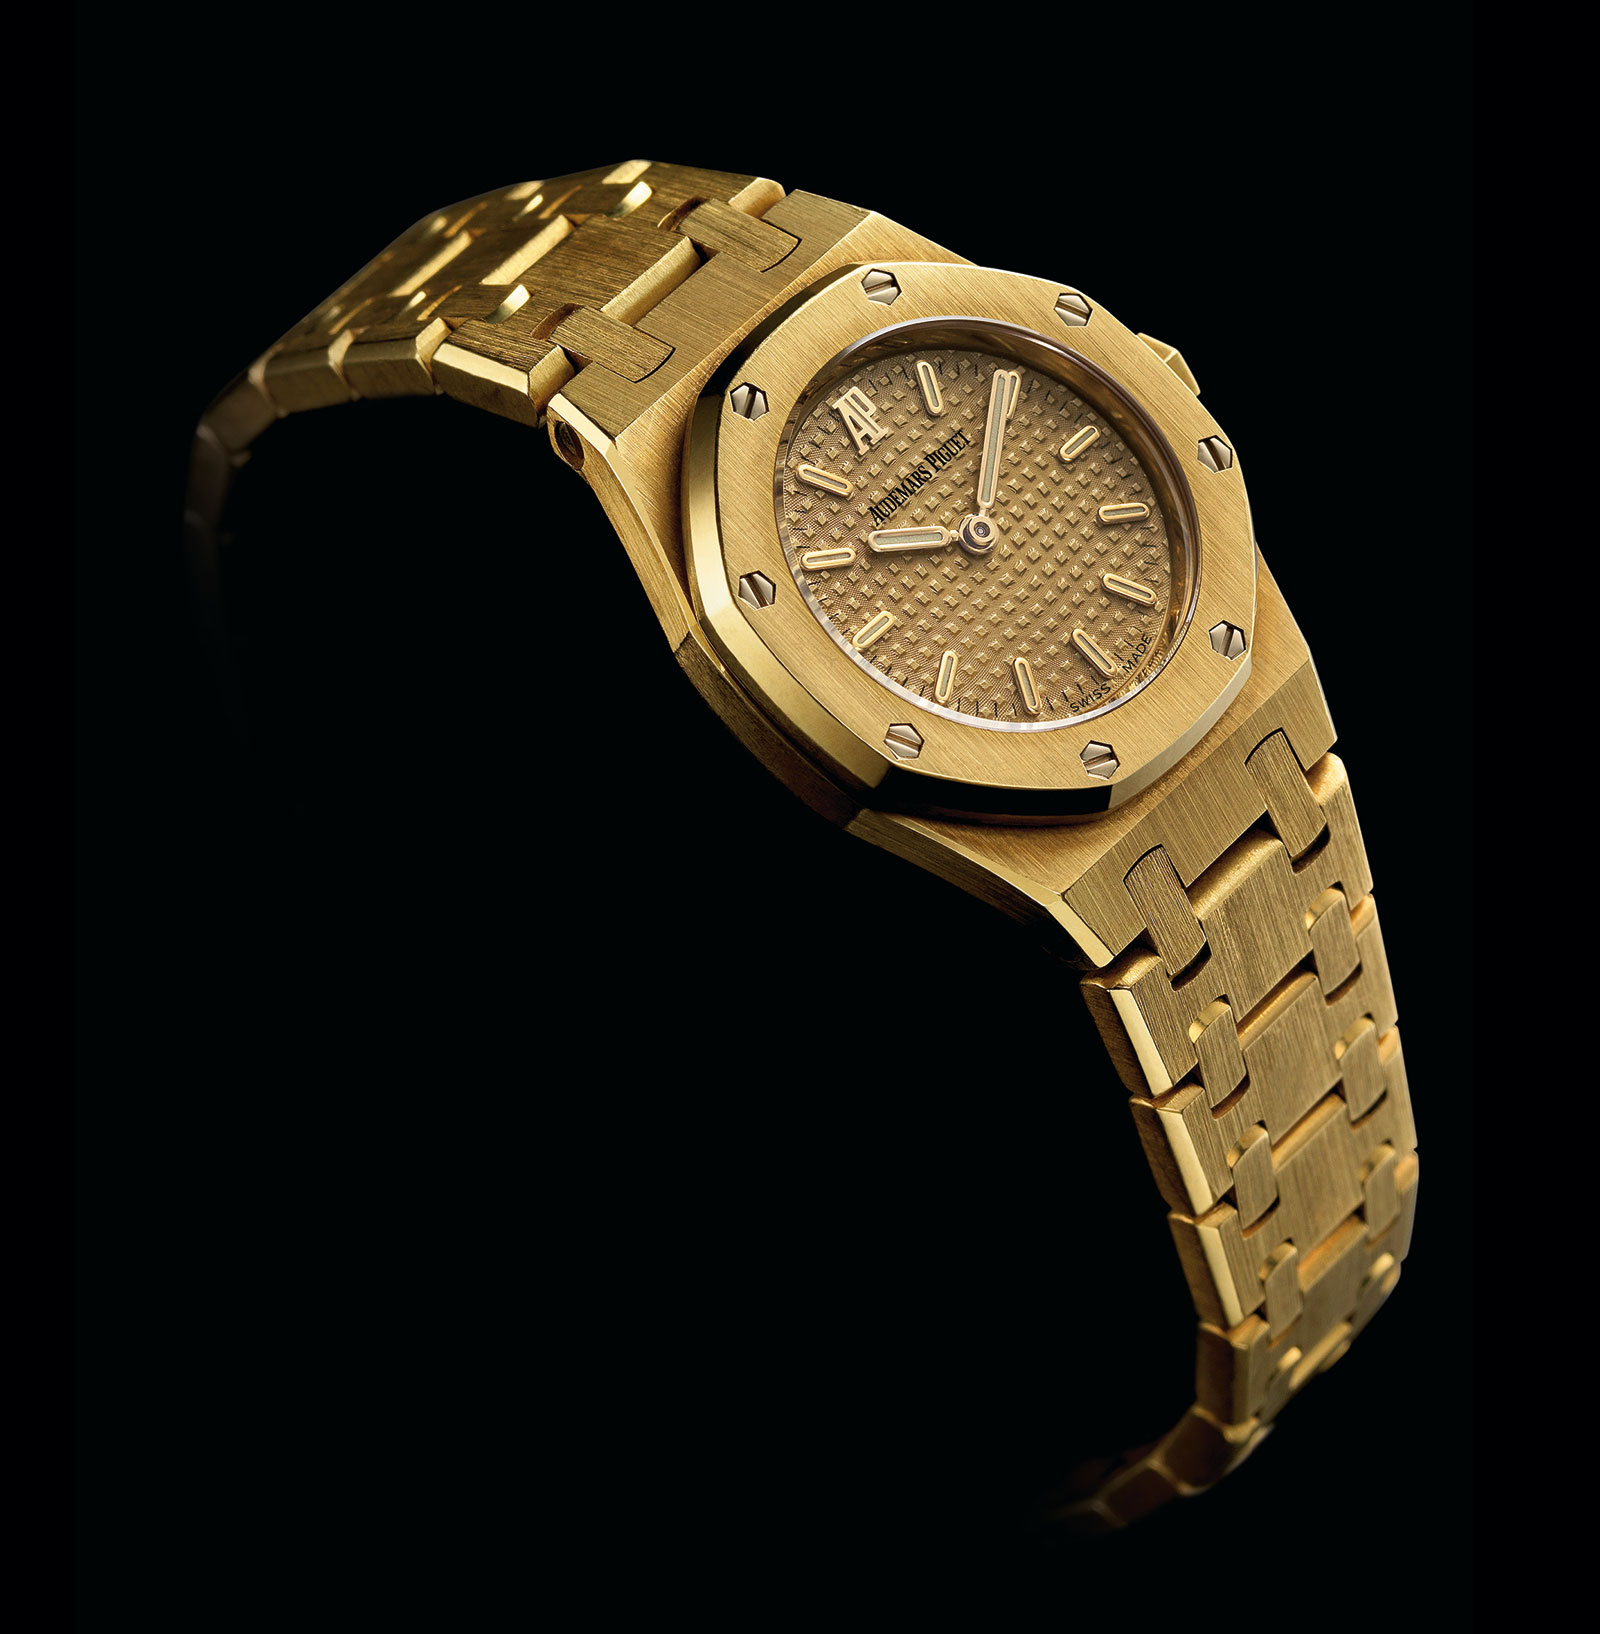 f393a748d Introducing the Audemars Piguet Royal Oak Frosted Gold for Ladies ...